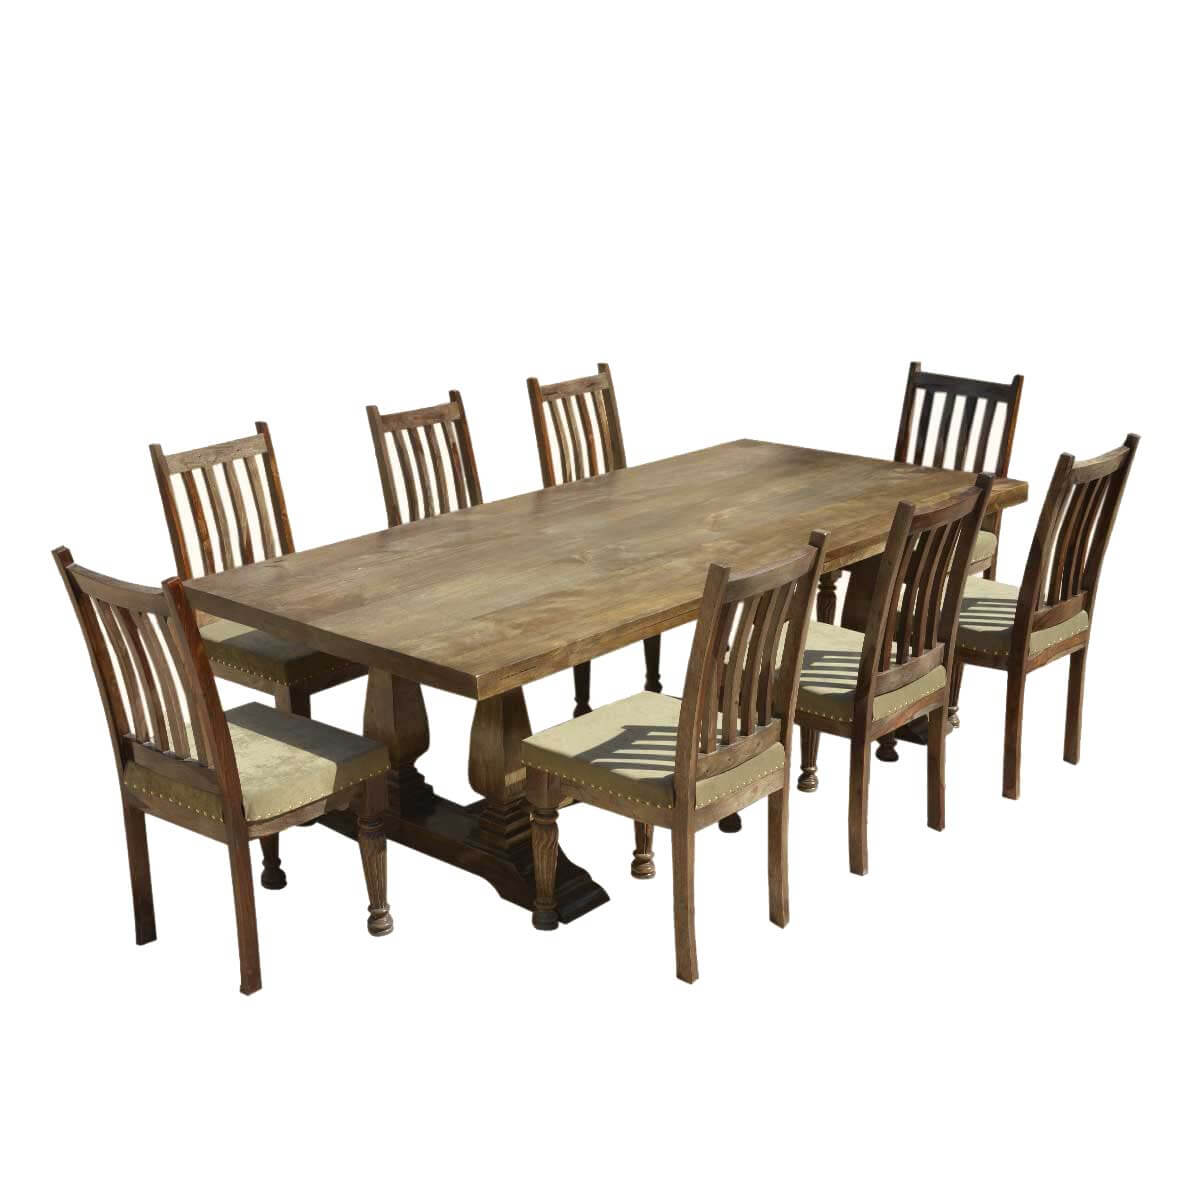 Farmhouse solid wood trestle rustic dining table for Solid wood dining table sets